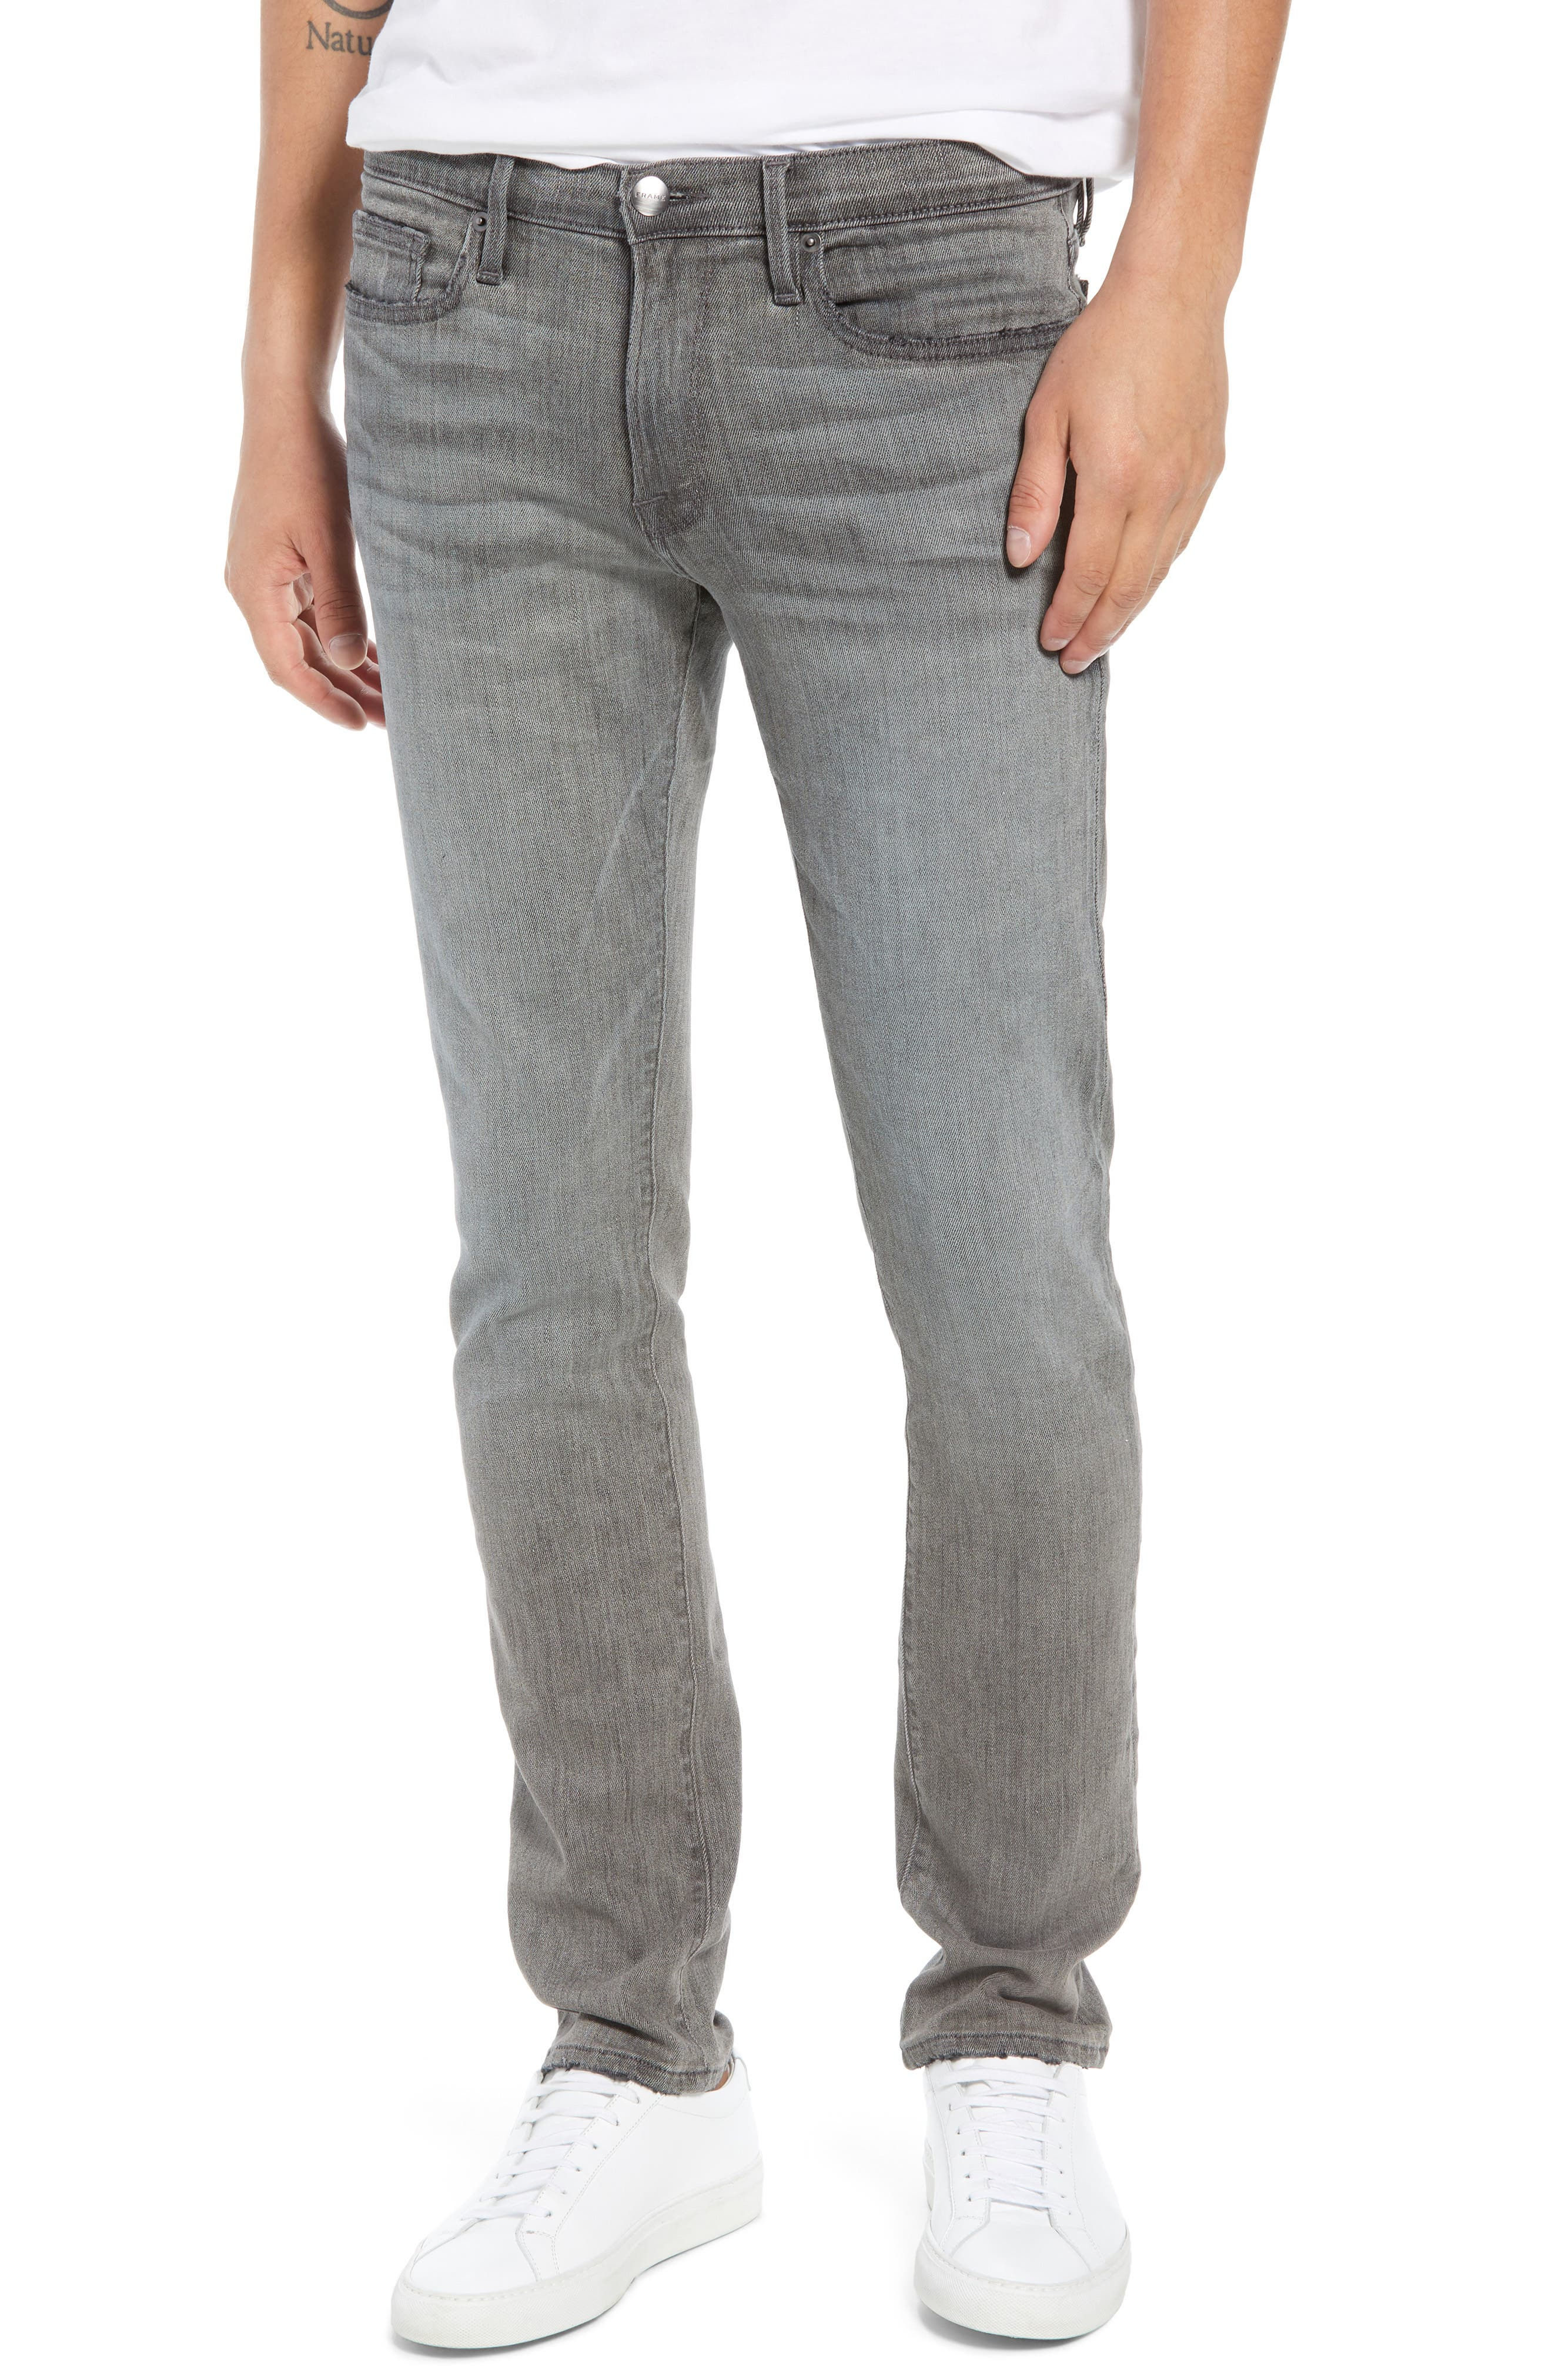 L'Homme Skinny Skinny Fit Jeans,                             Main thumbnail 1, color,                             FORT MCHEN